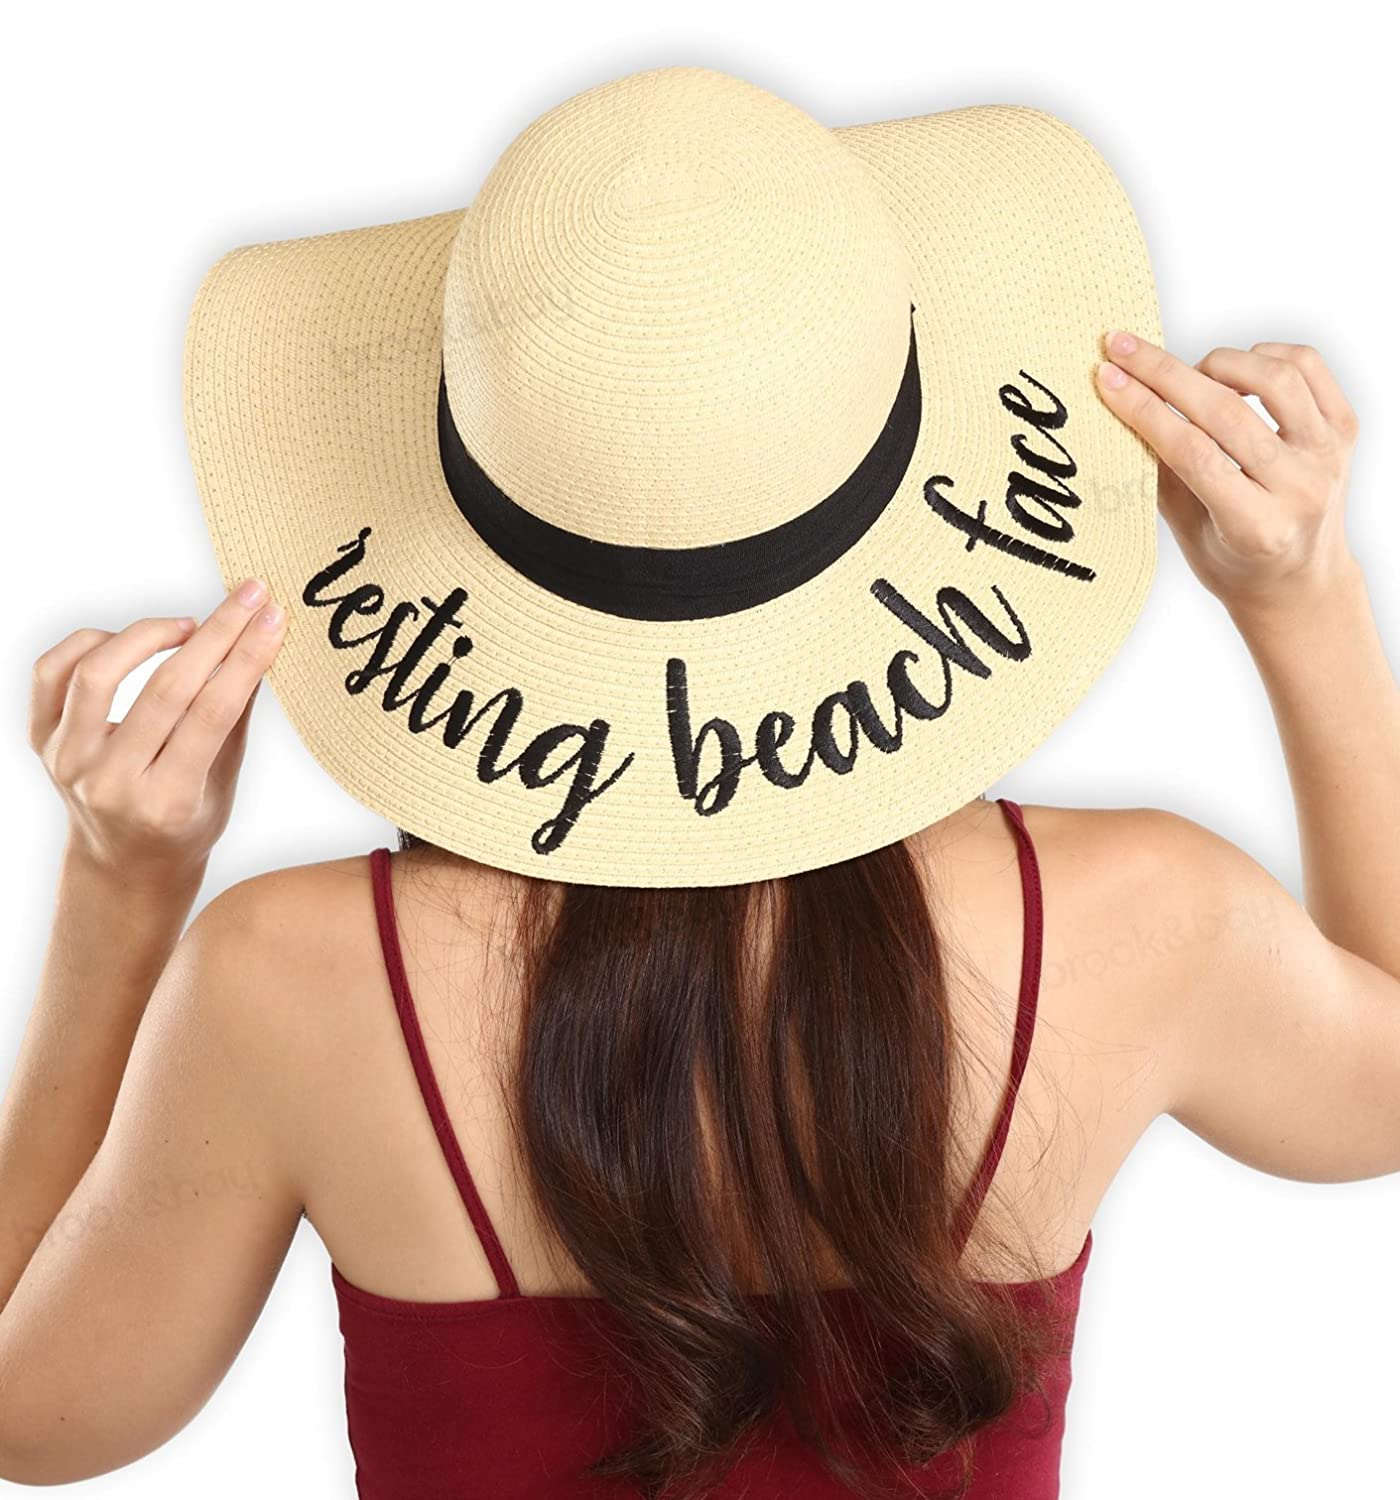 Women's Embroidered Floppy Beach Sun Hat - Wide Brim Summer Straw Hats - Ideal for Travel & Vacation - Foldable & Packable